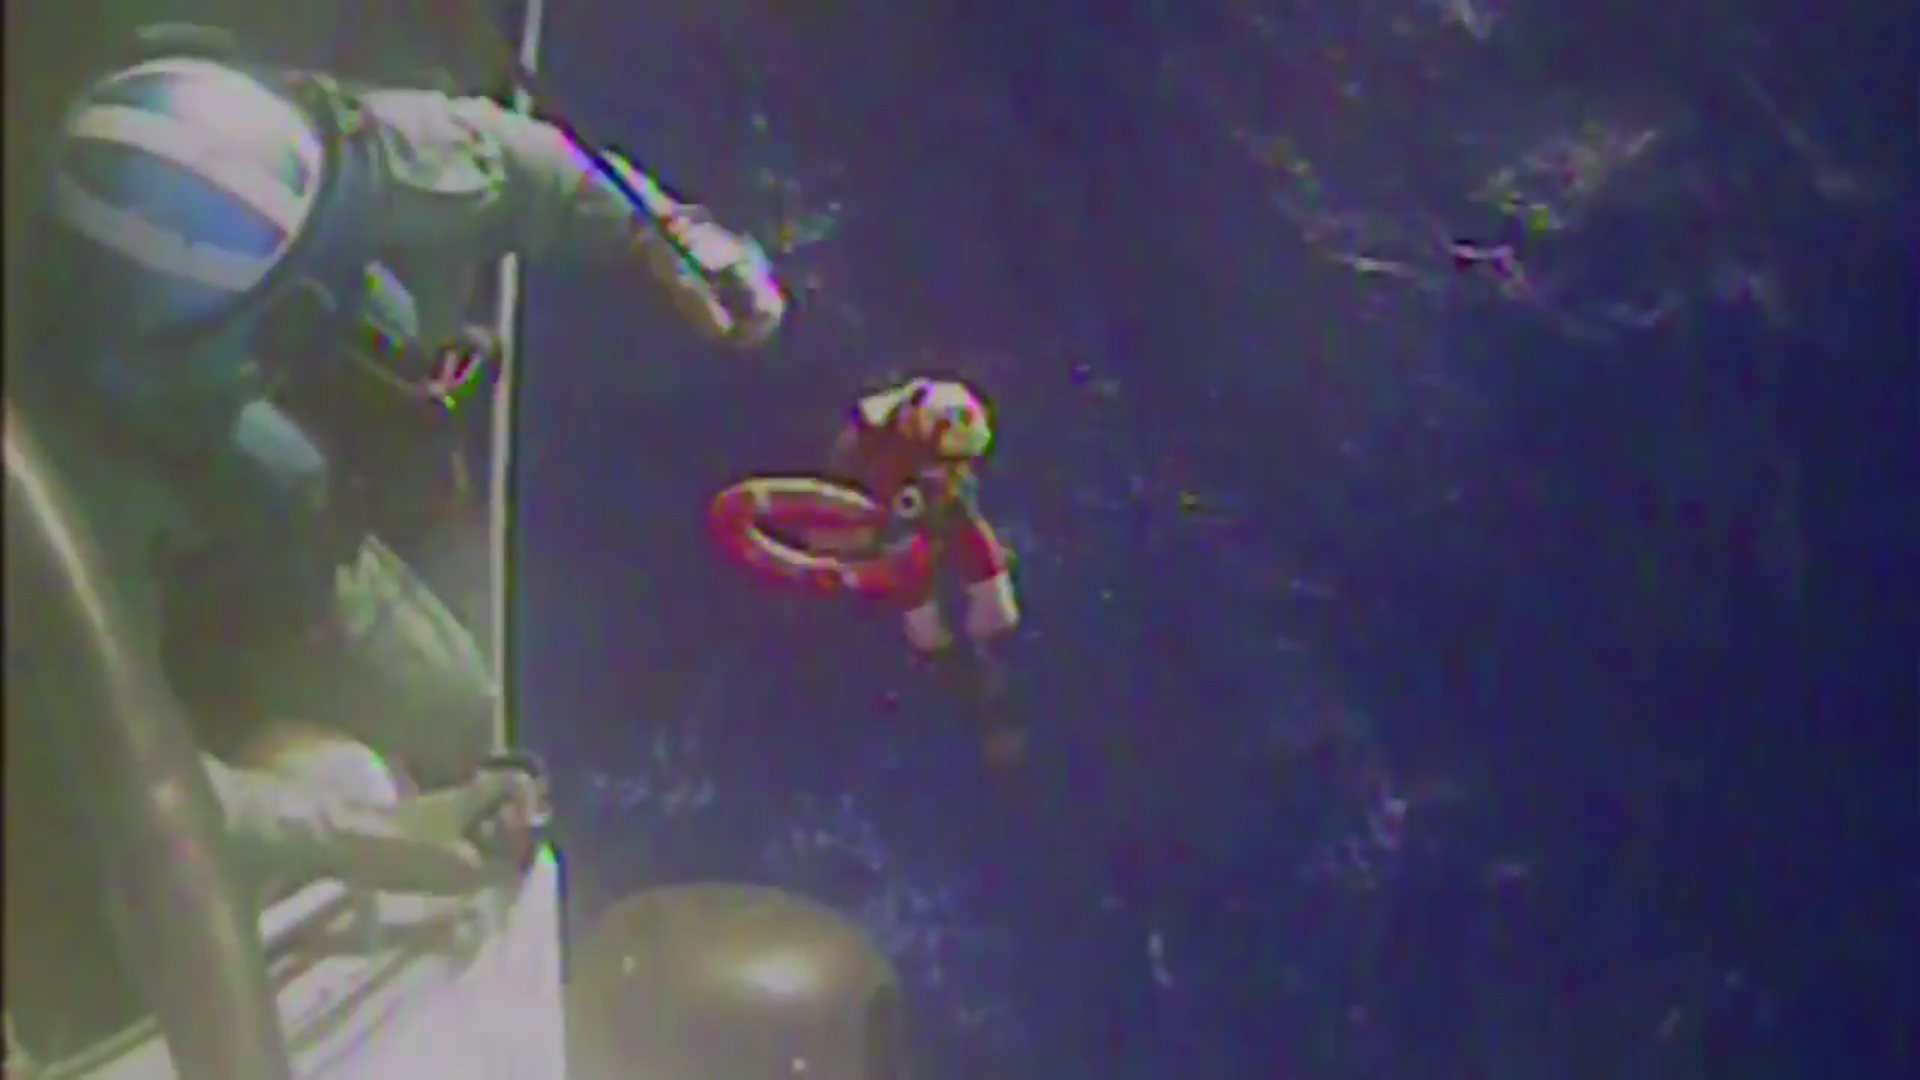 U.S. Coast Guard members retrieve a life preserver ring from the cargo ship El Faro in this still image from a Oct. 4, 2015 U.S. Coast Guard handout video. Image courtesy of U.S. Coast Guard/Handout via Reuters